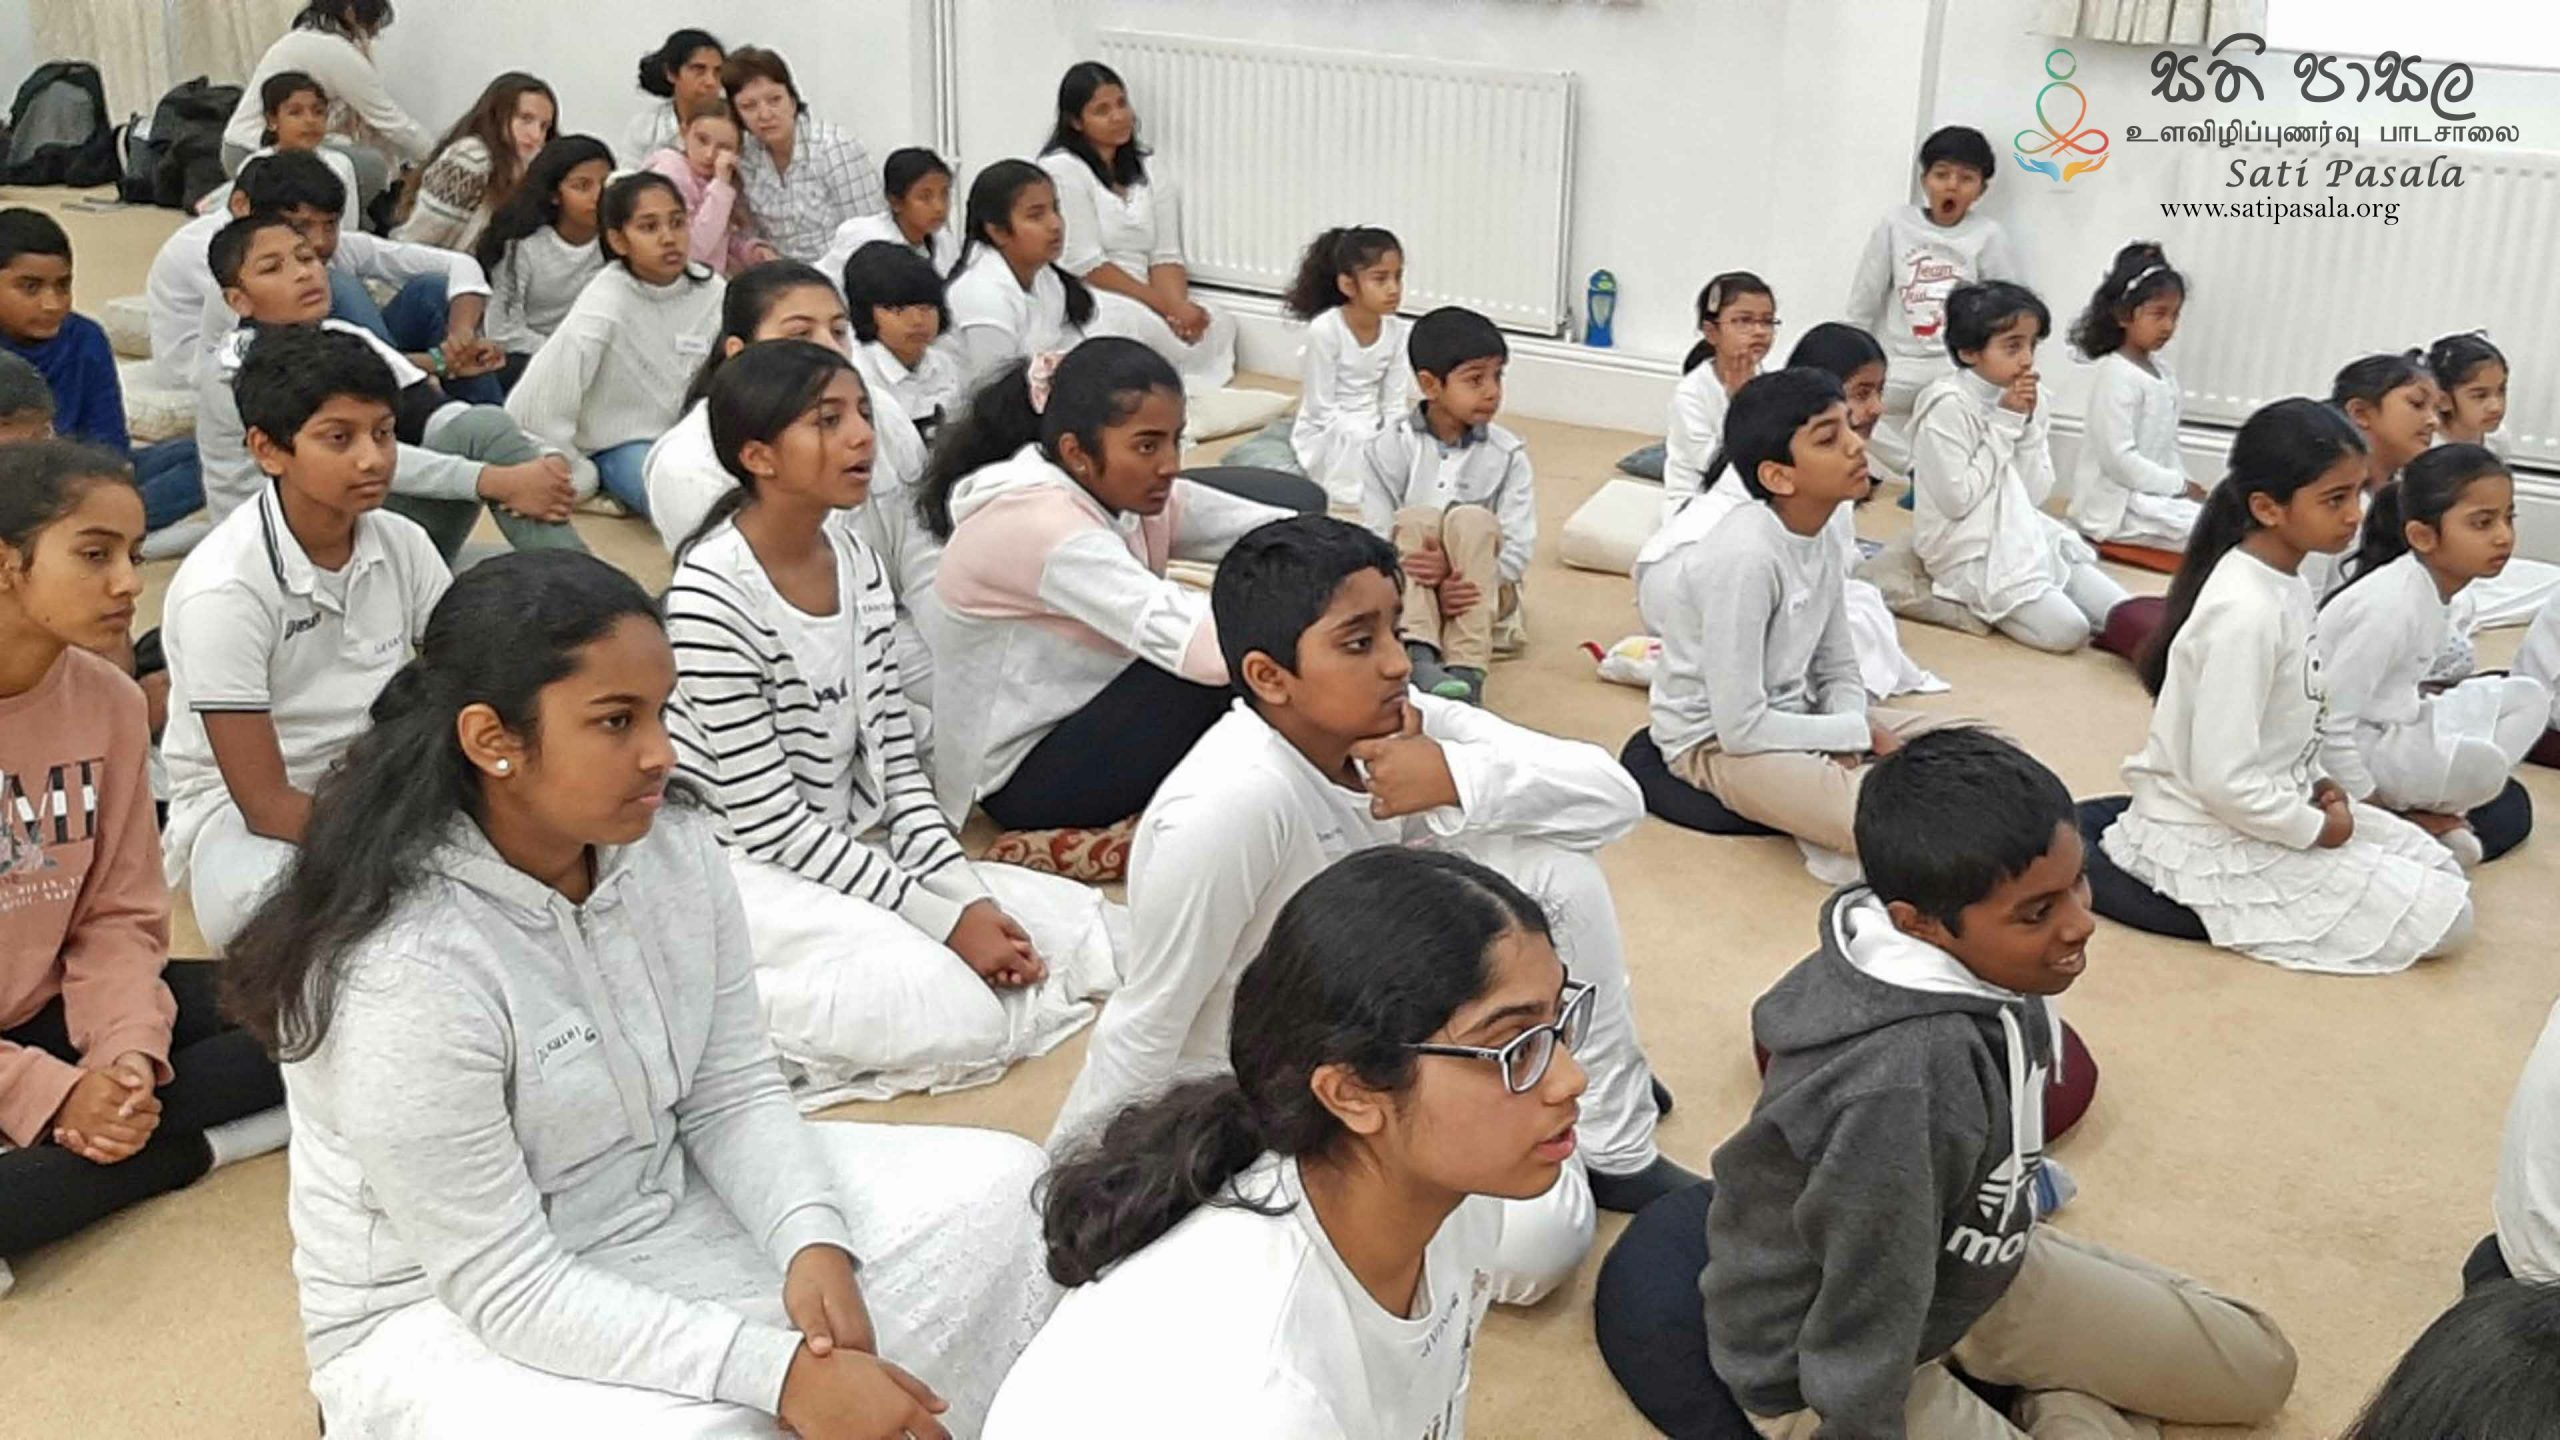 Sati Pasala Day Camp at Thames Buddhist Vihara, United Kingdom